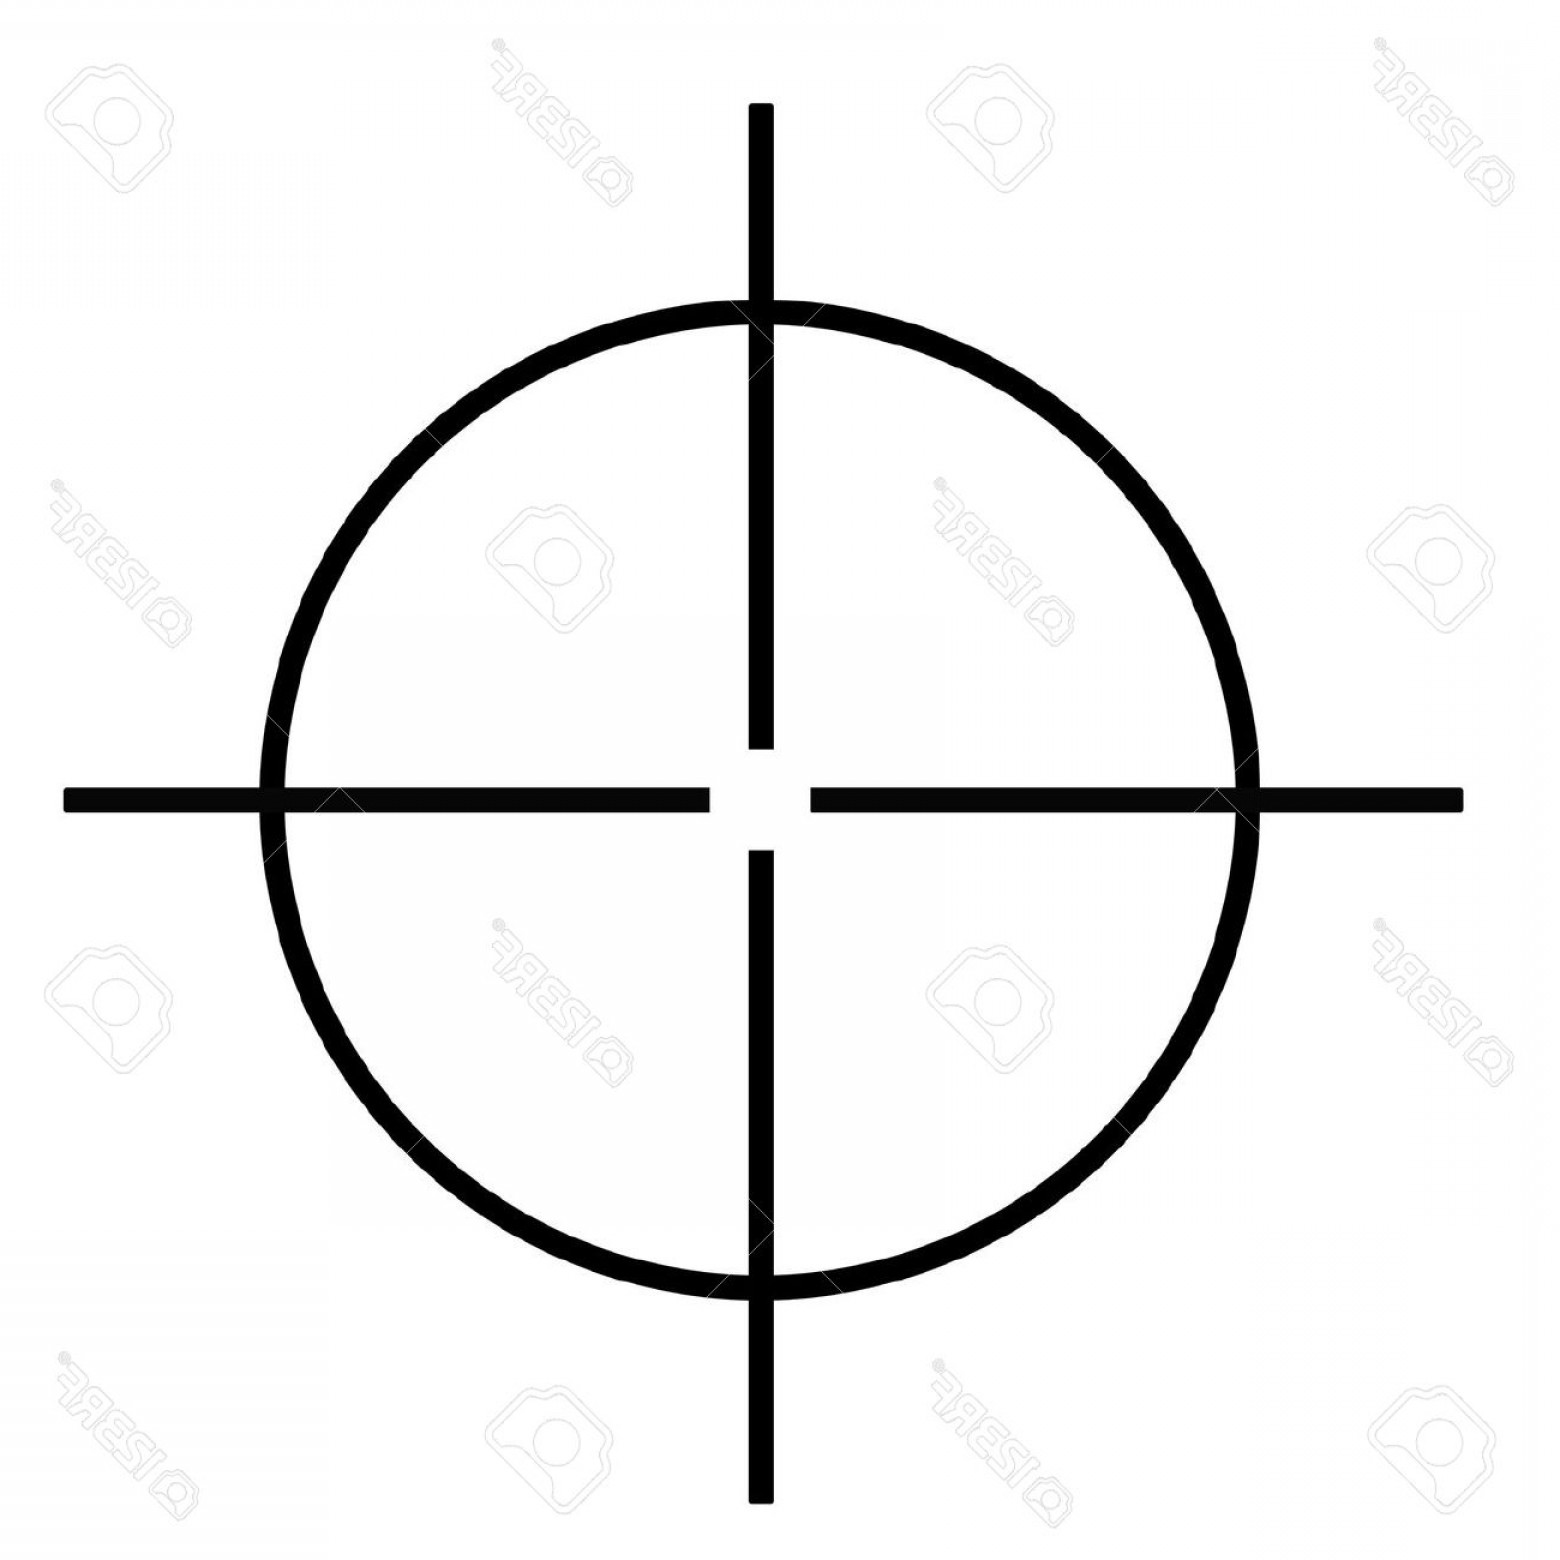 Hunting Rifle Vector Cross: Photosniper Rifle Cross Hairs Isolated On White Background